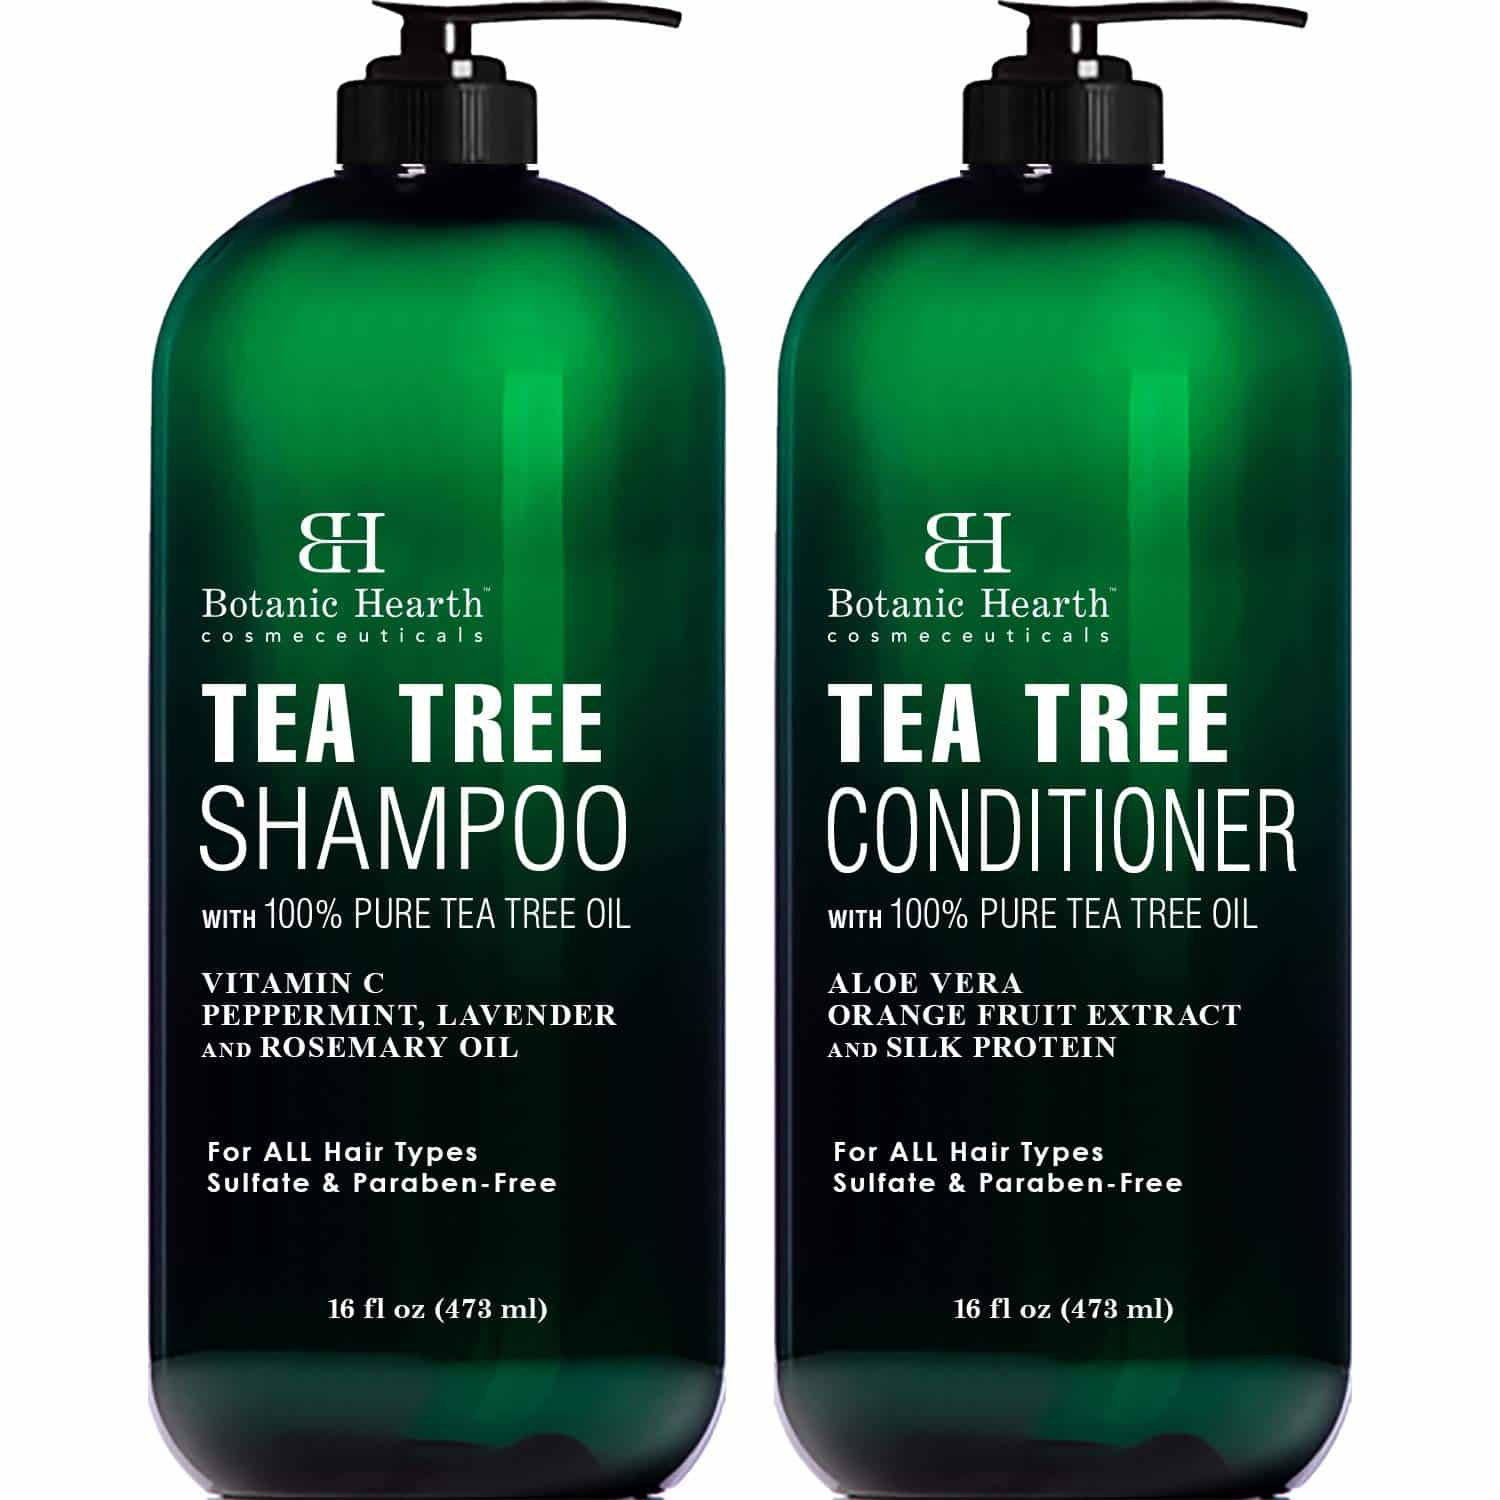 Botanic Hearth Tea Tree Shampoo and Conditioner Set Review